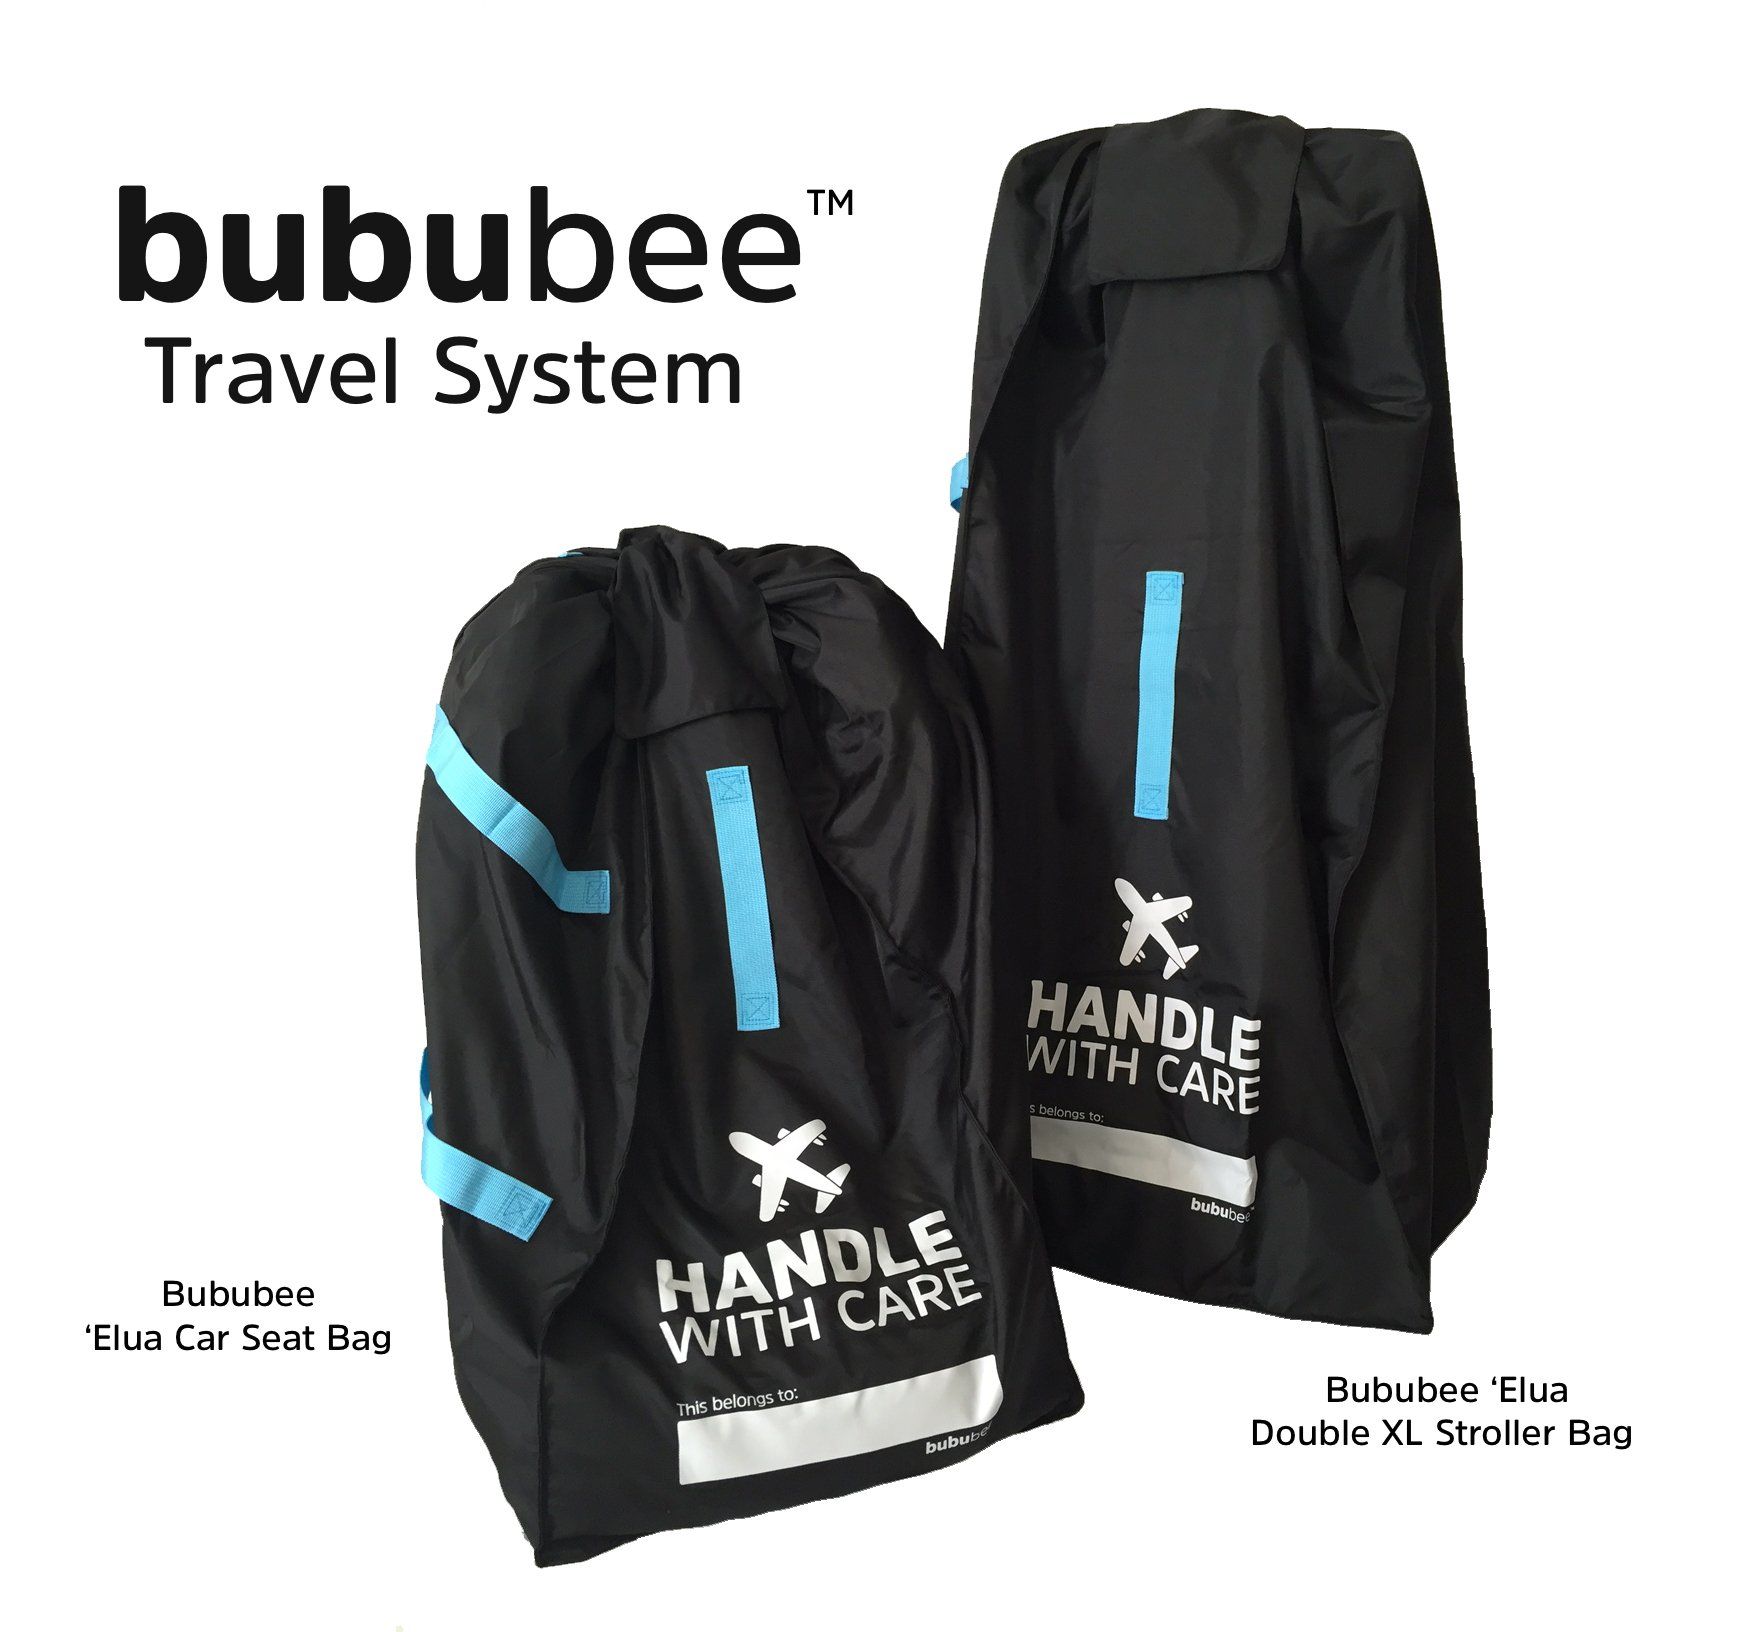 Bububee 'Elua XL Double Stroller Gate Check Travel Bag (Black & Aqua) by Bububee (Image #8)